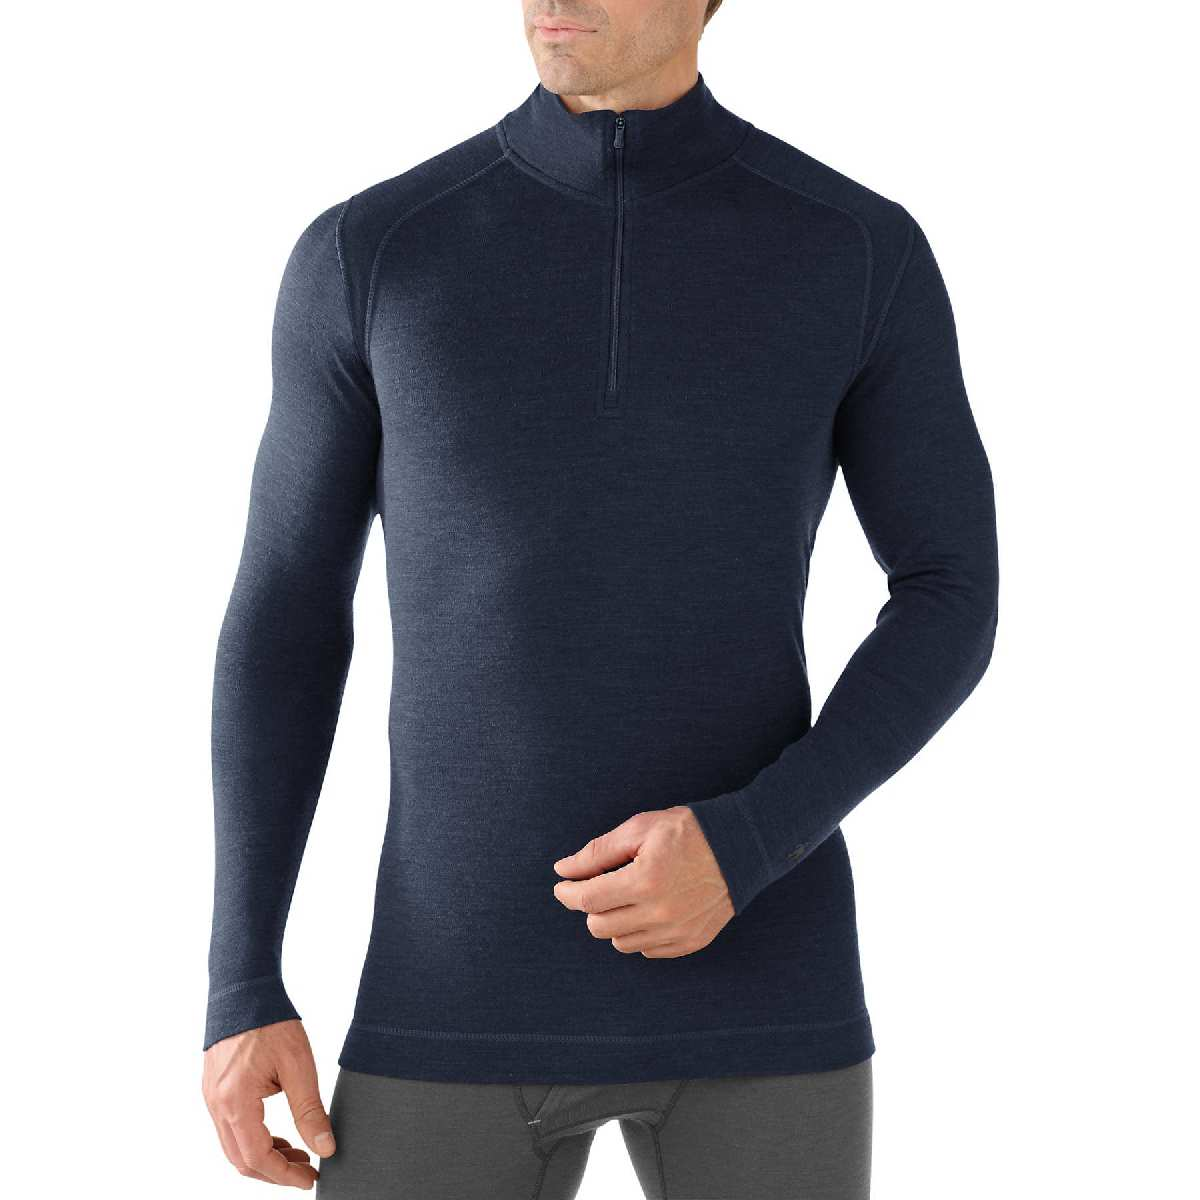 SmartWool NTS Mid 250 Zip T Long Sleeve Base Layer Men's Size S DeepNavy U.S.A. & Canada